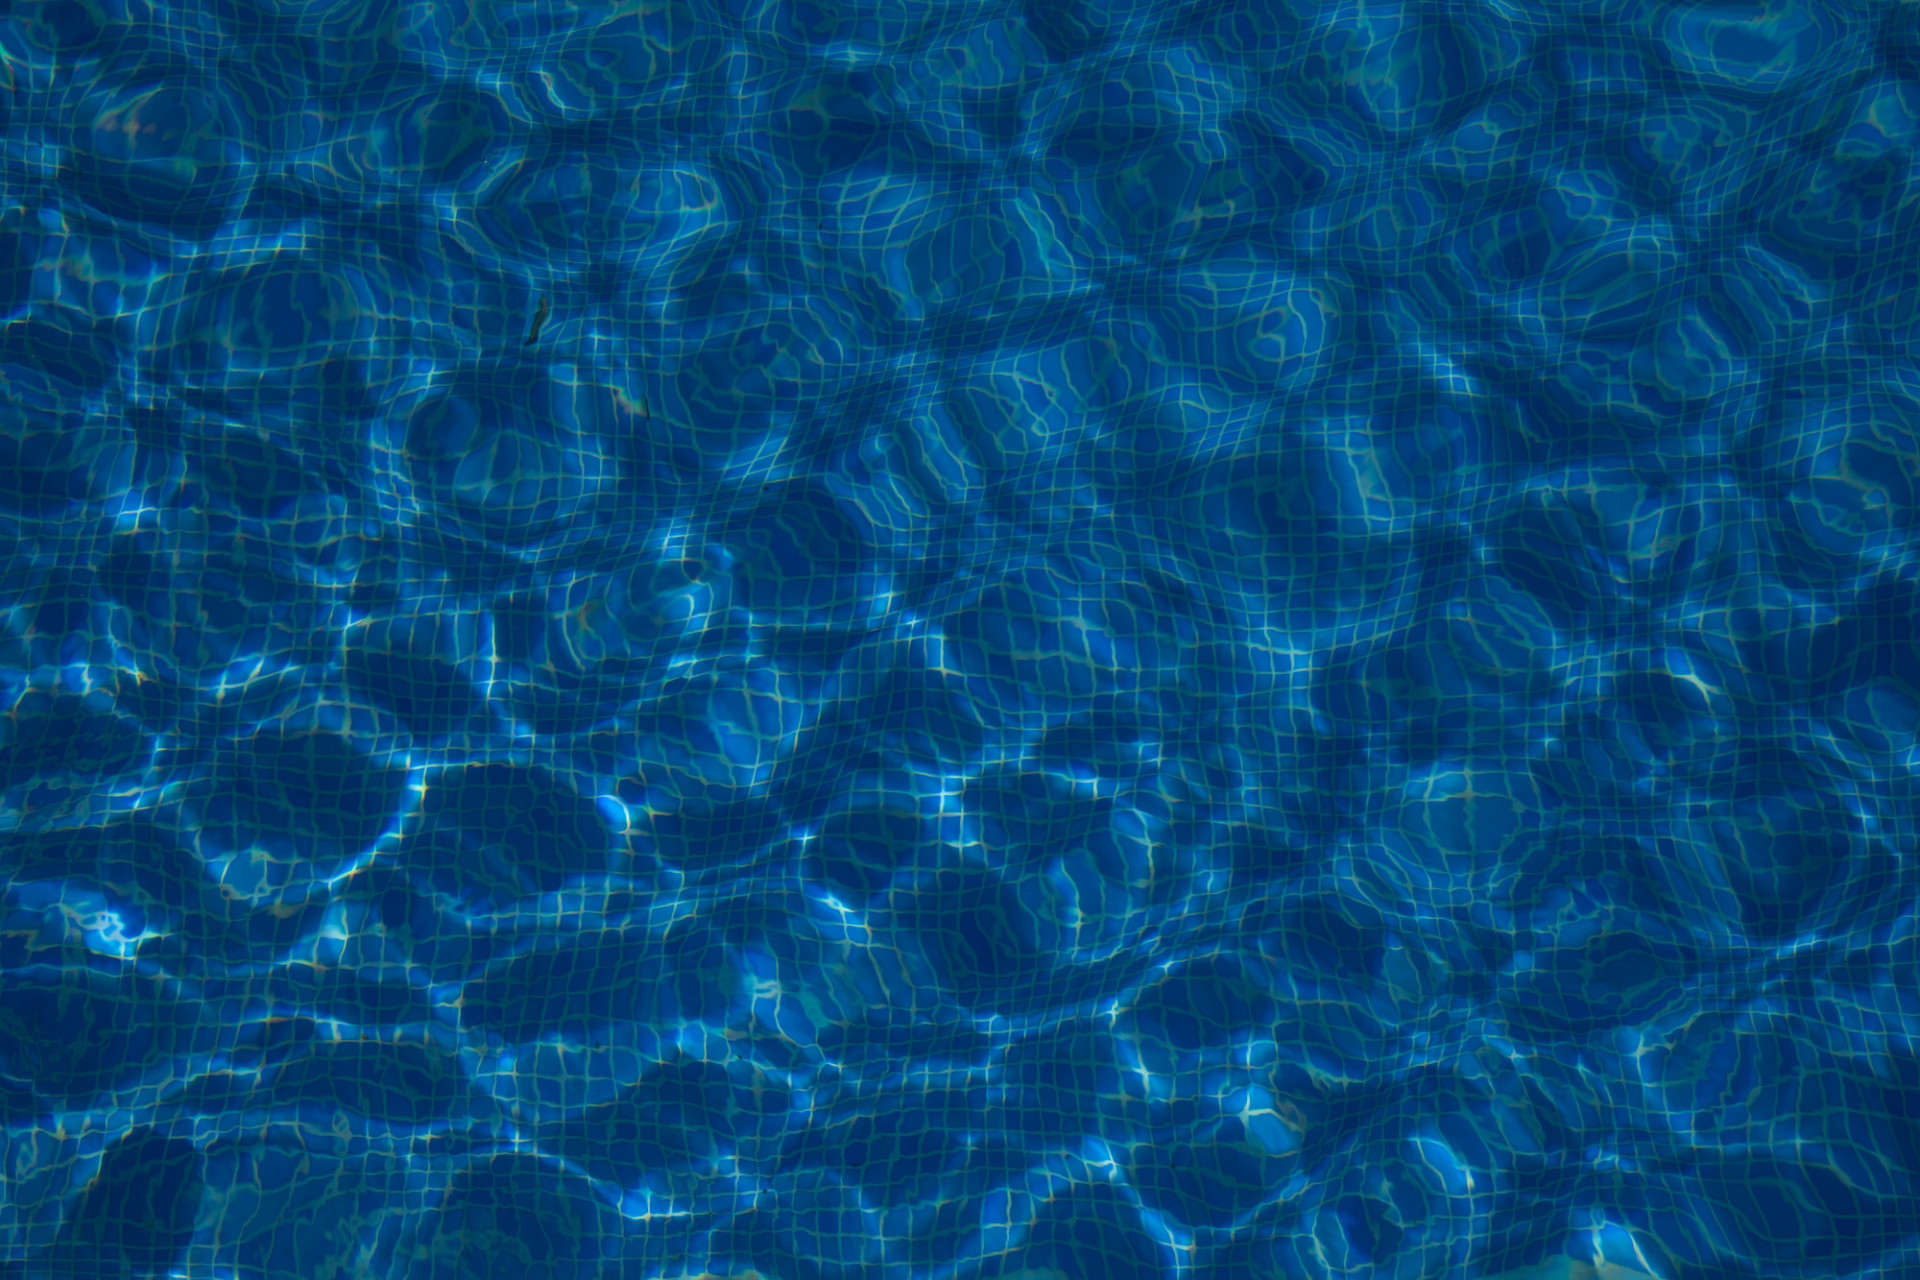 water swimming pool texture